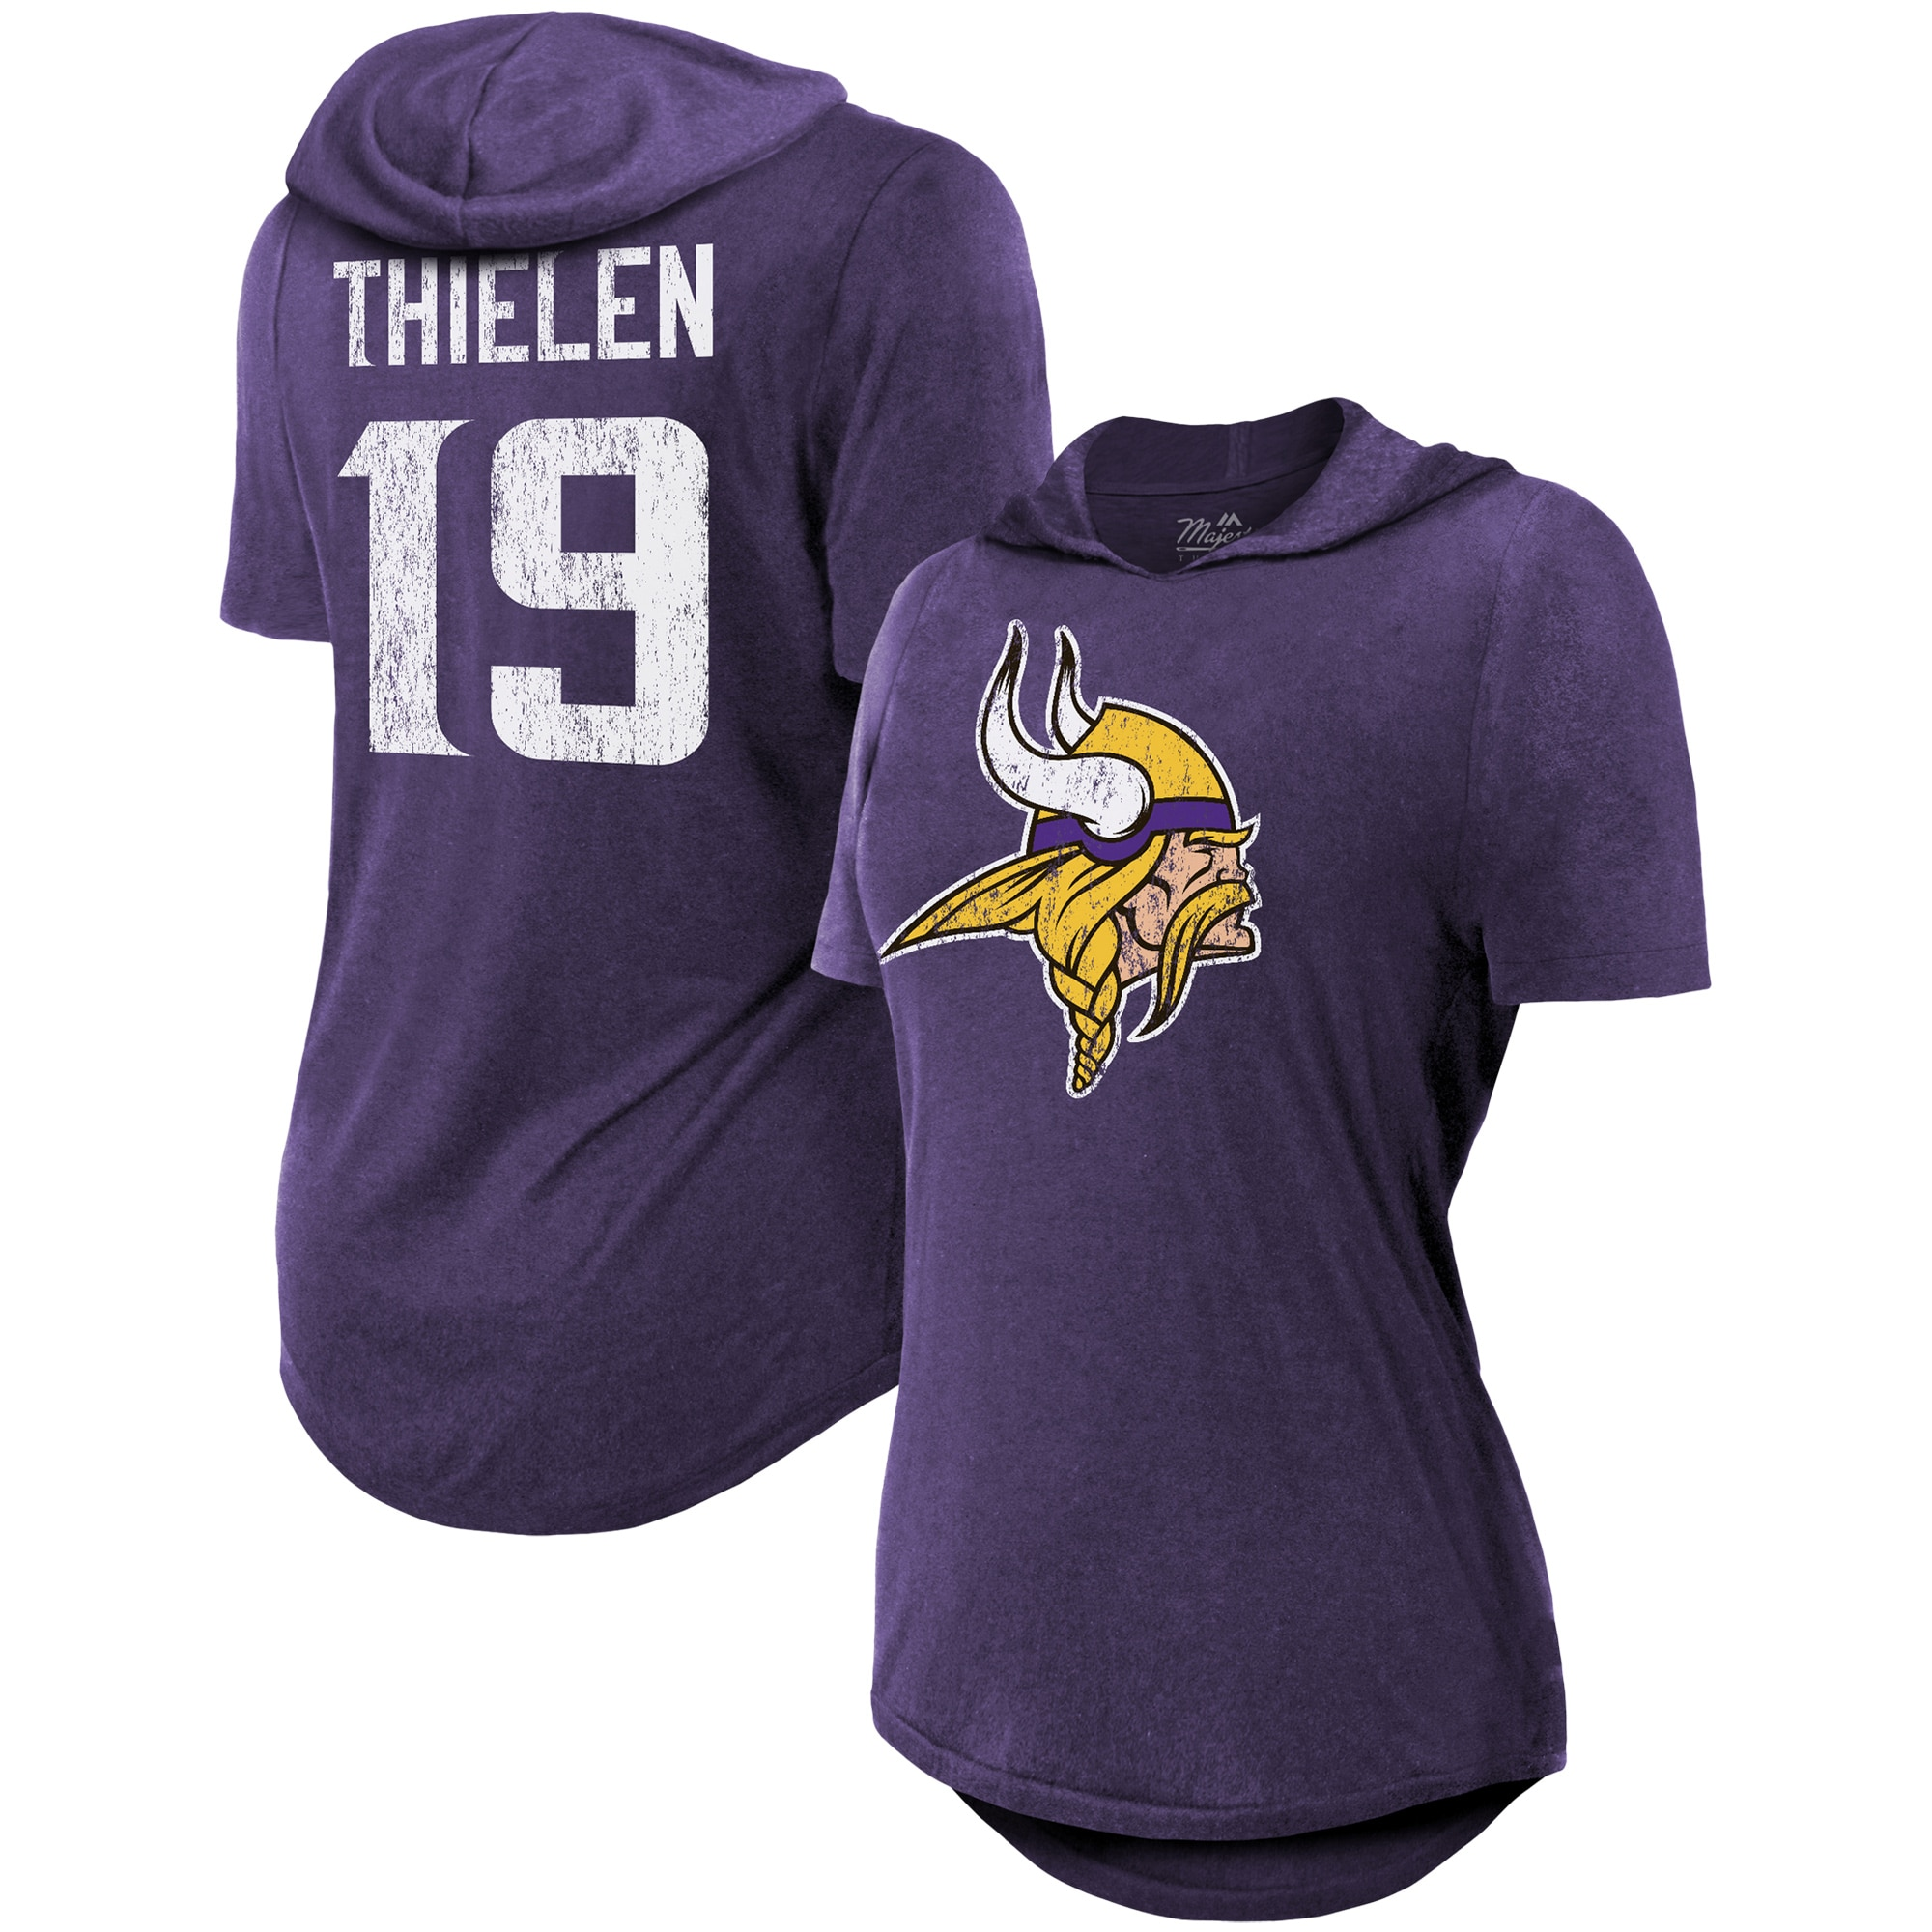 Adam Thielen Minnesota Vikings Majestic Threads Women's Hilo Name & Number Hoodie T-Shirt - Purple